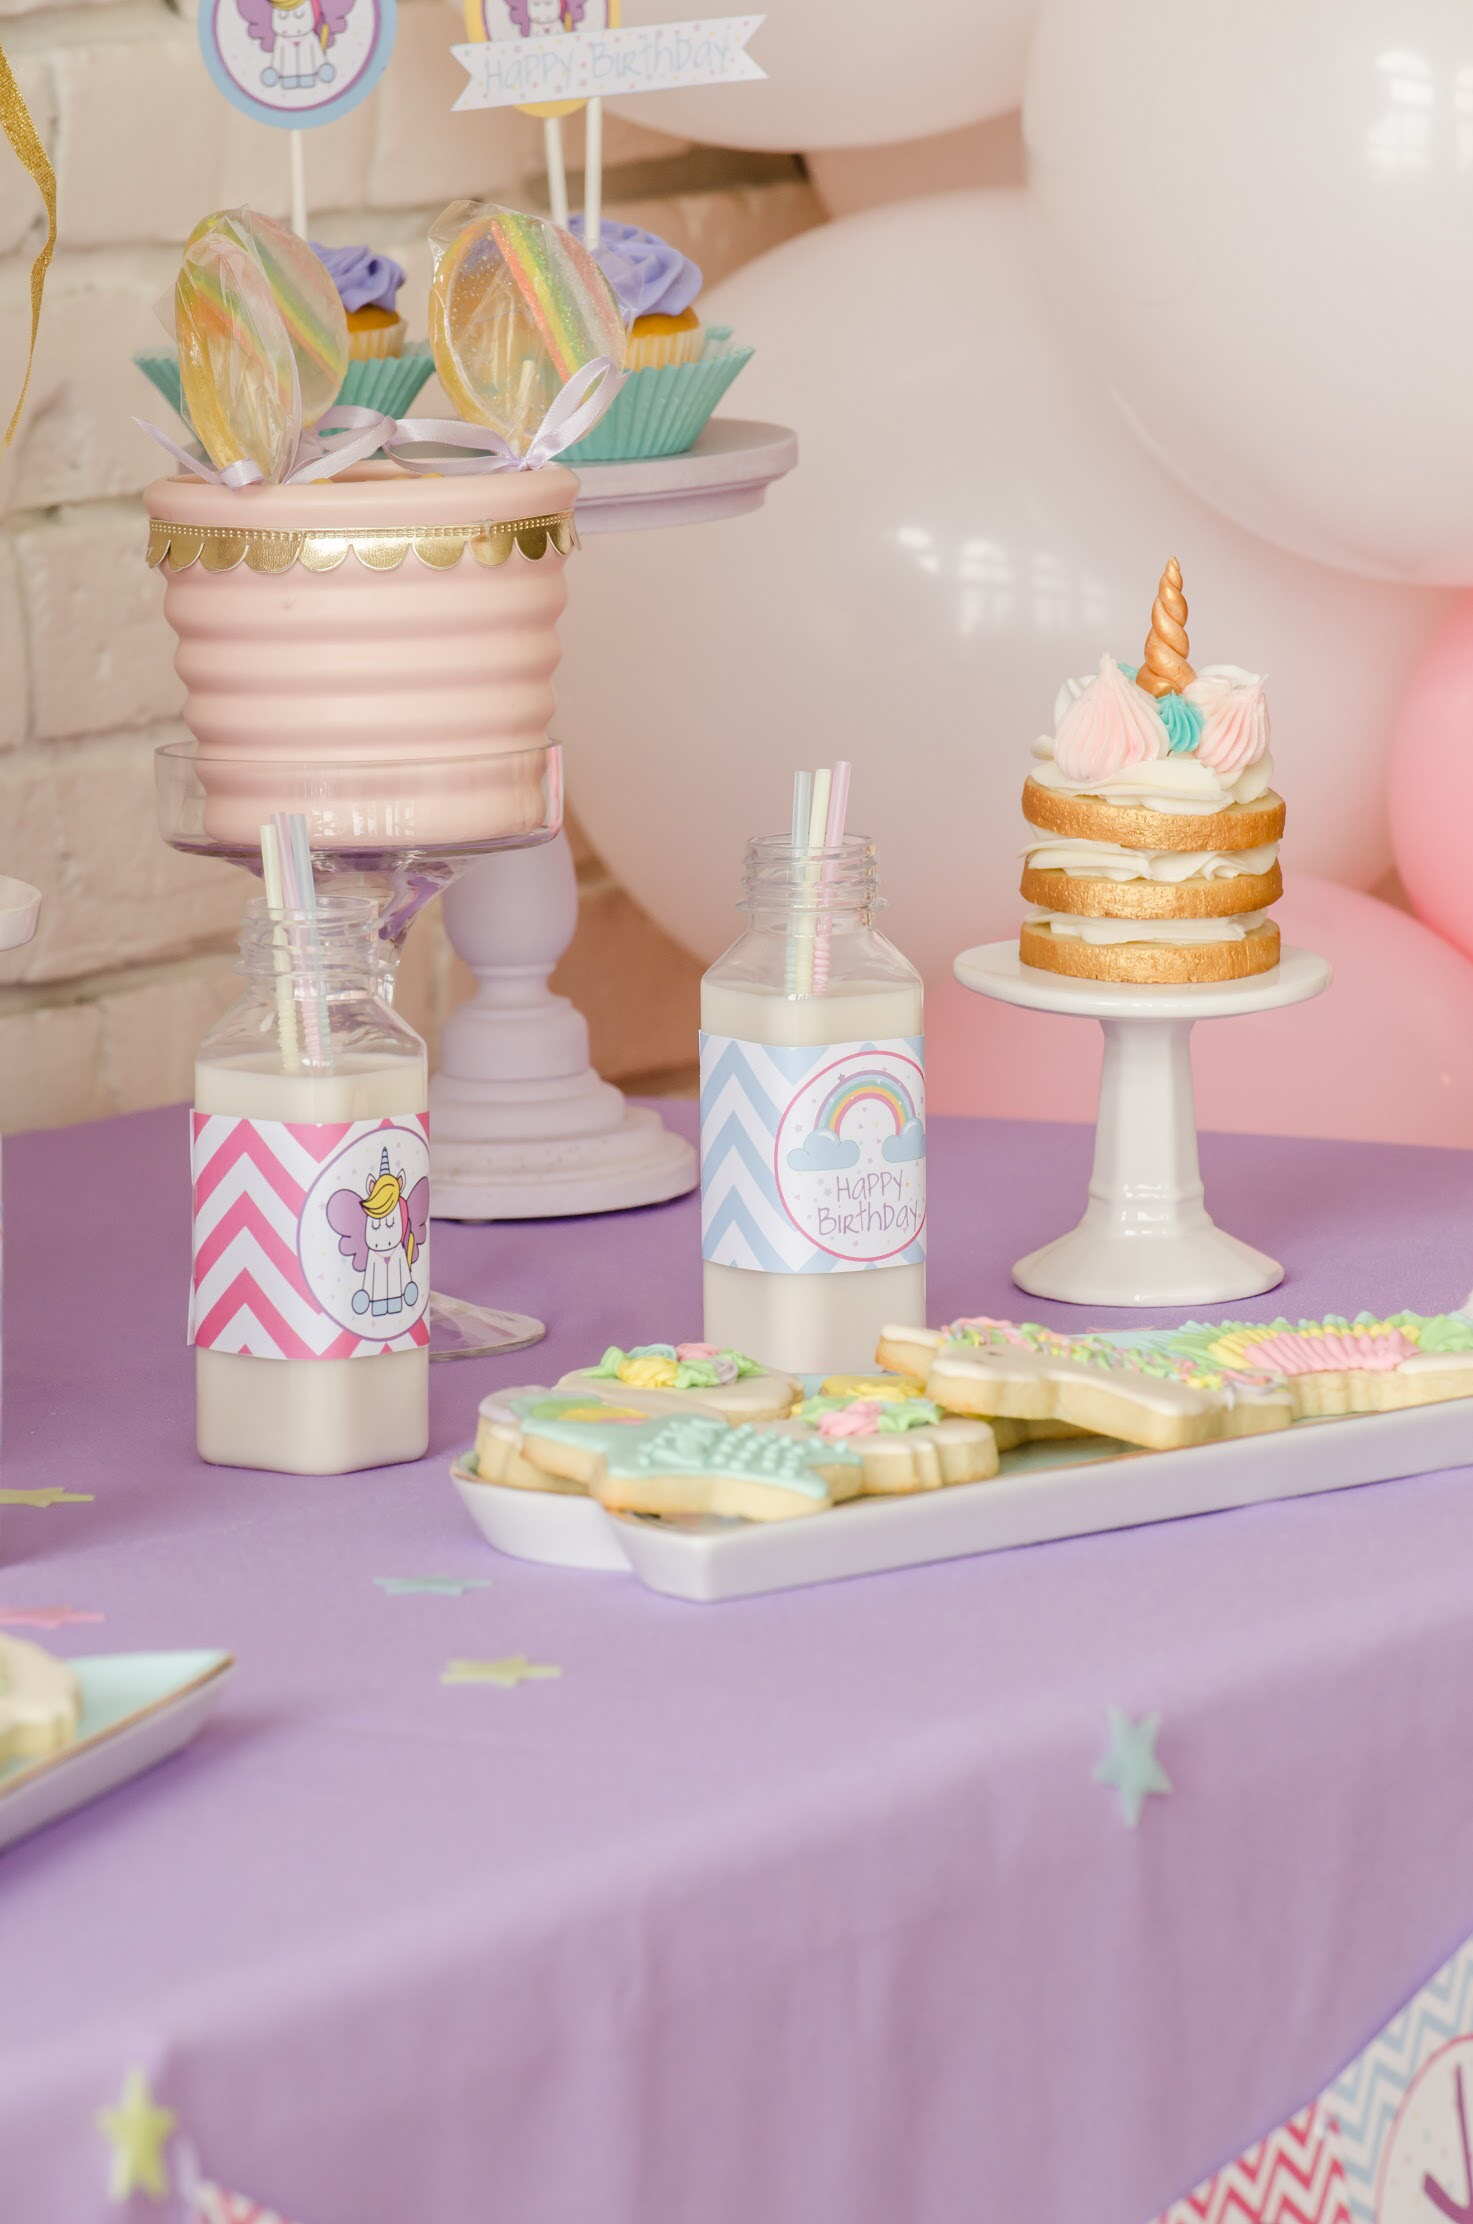 Free Printable bottle wrappers. Come see all the Unicorn Birthday Party Ideas at Mint Event Design www.minteventdesign.com #unicornparty #birthdayparty #birthdaypartyideas #pastelrainbow #printables